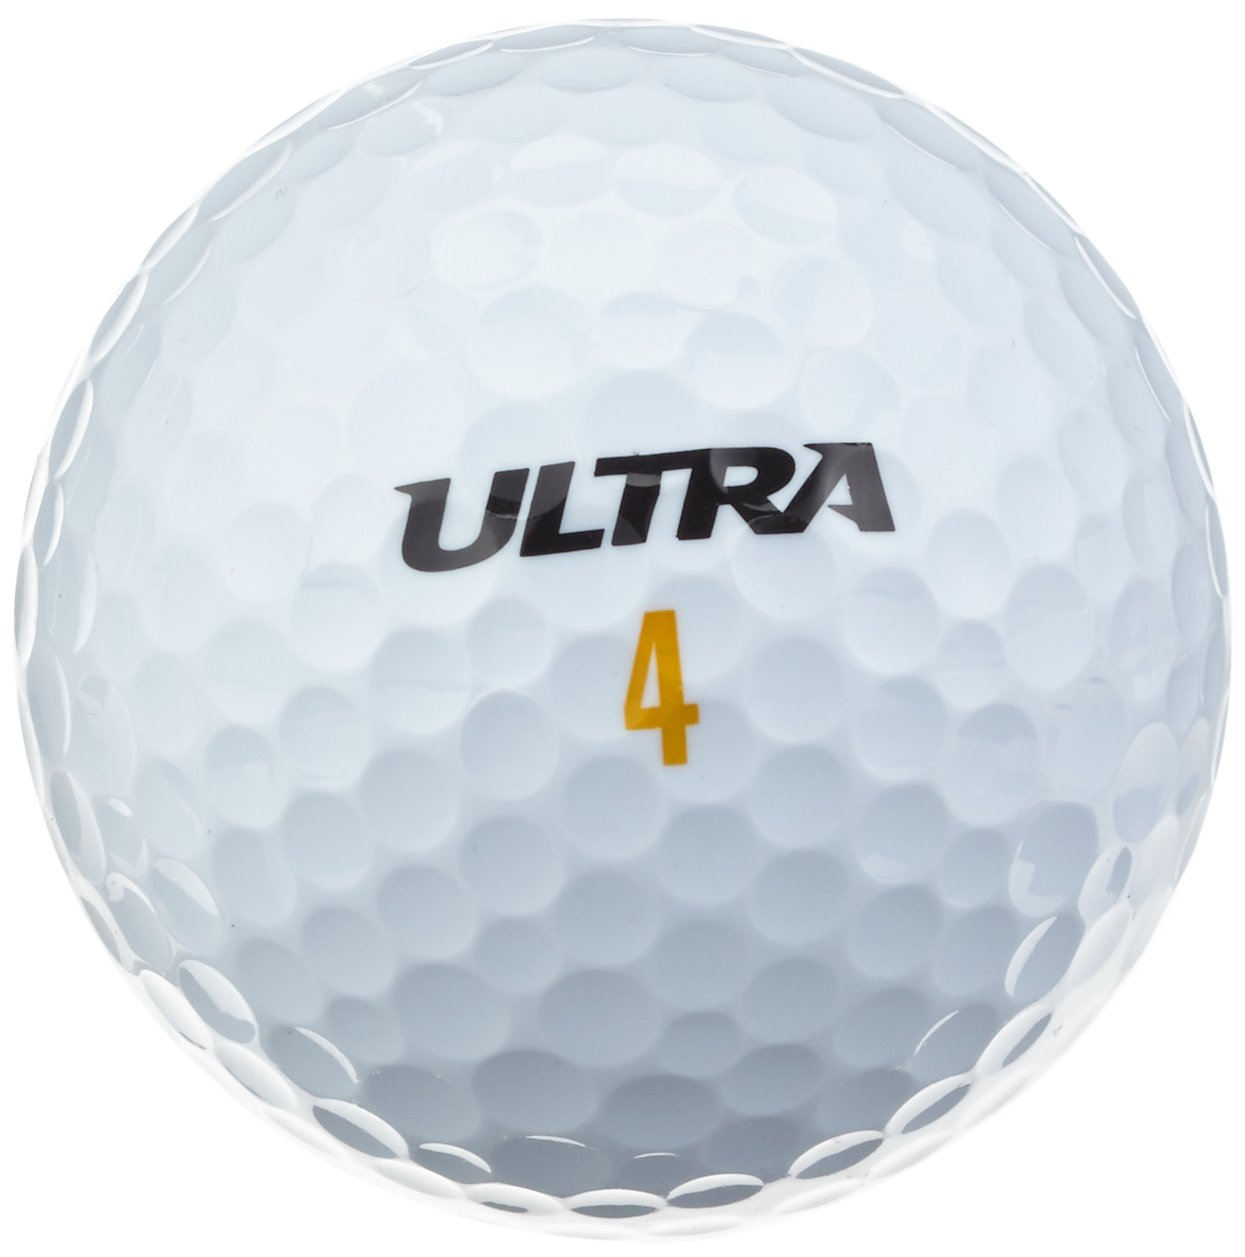 Wilson Ultra LUE Bola de Golf, Unisex, Blanco, 24: Amazon.es ...